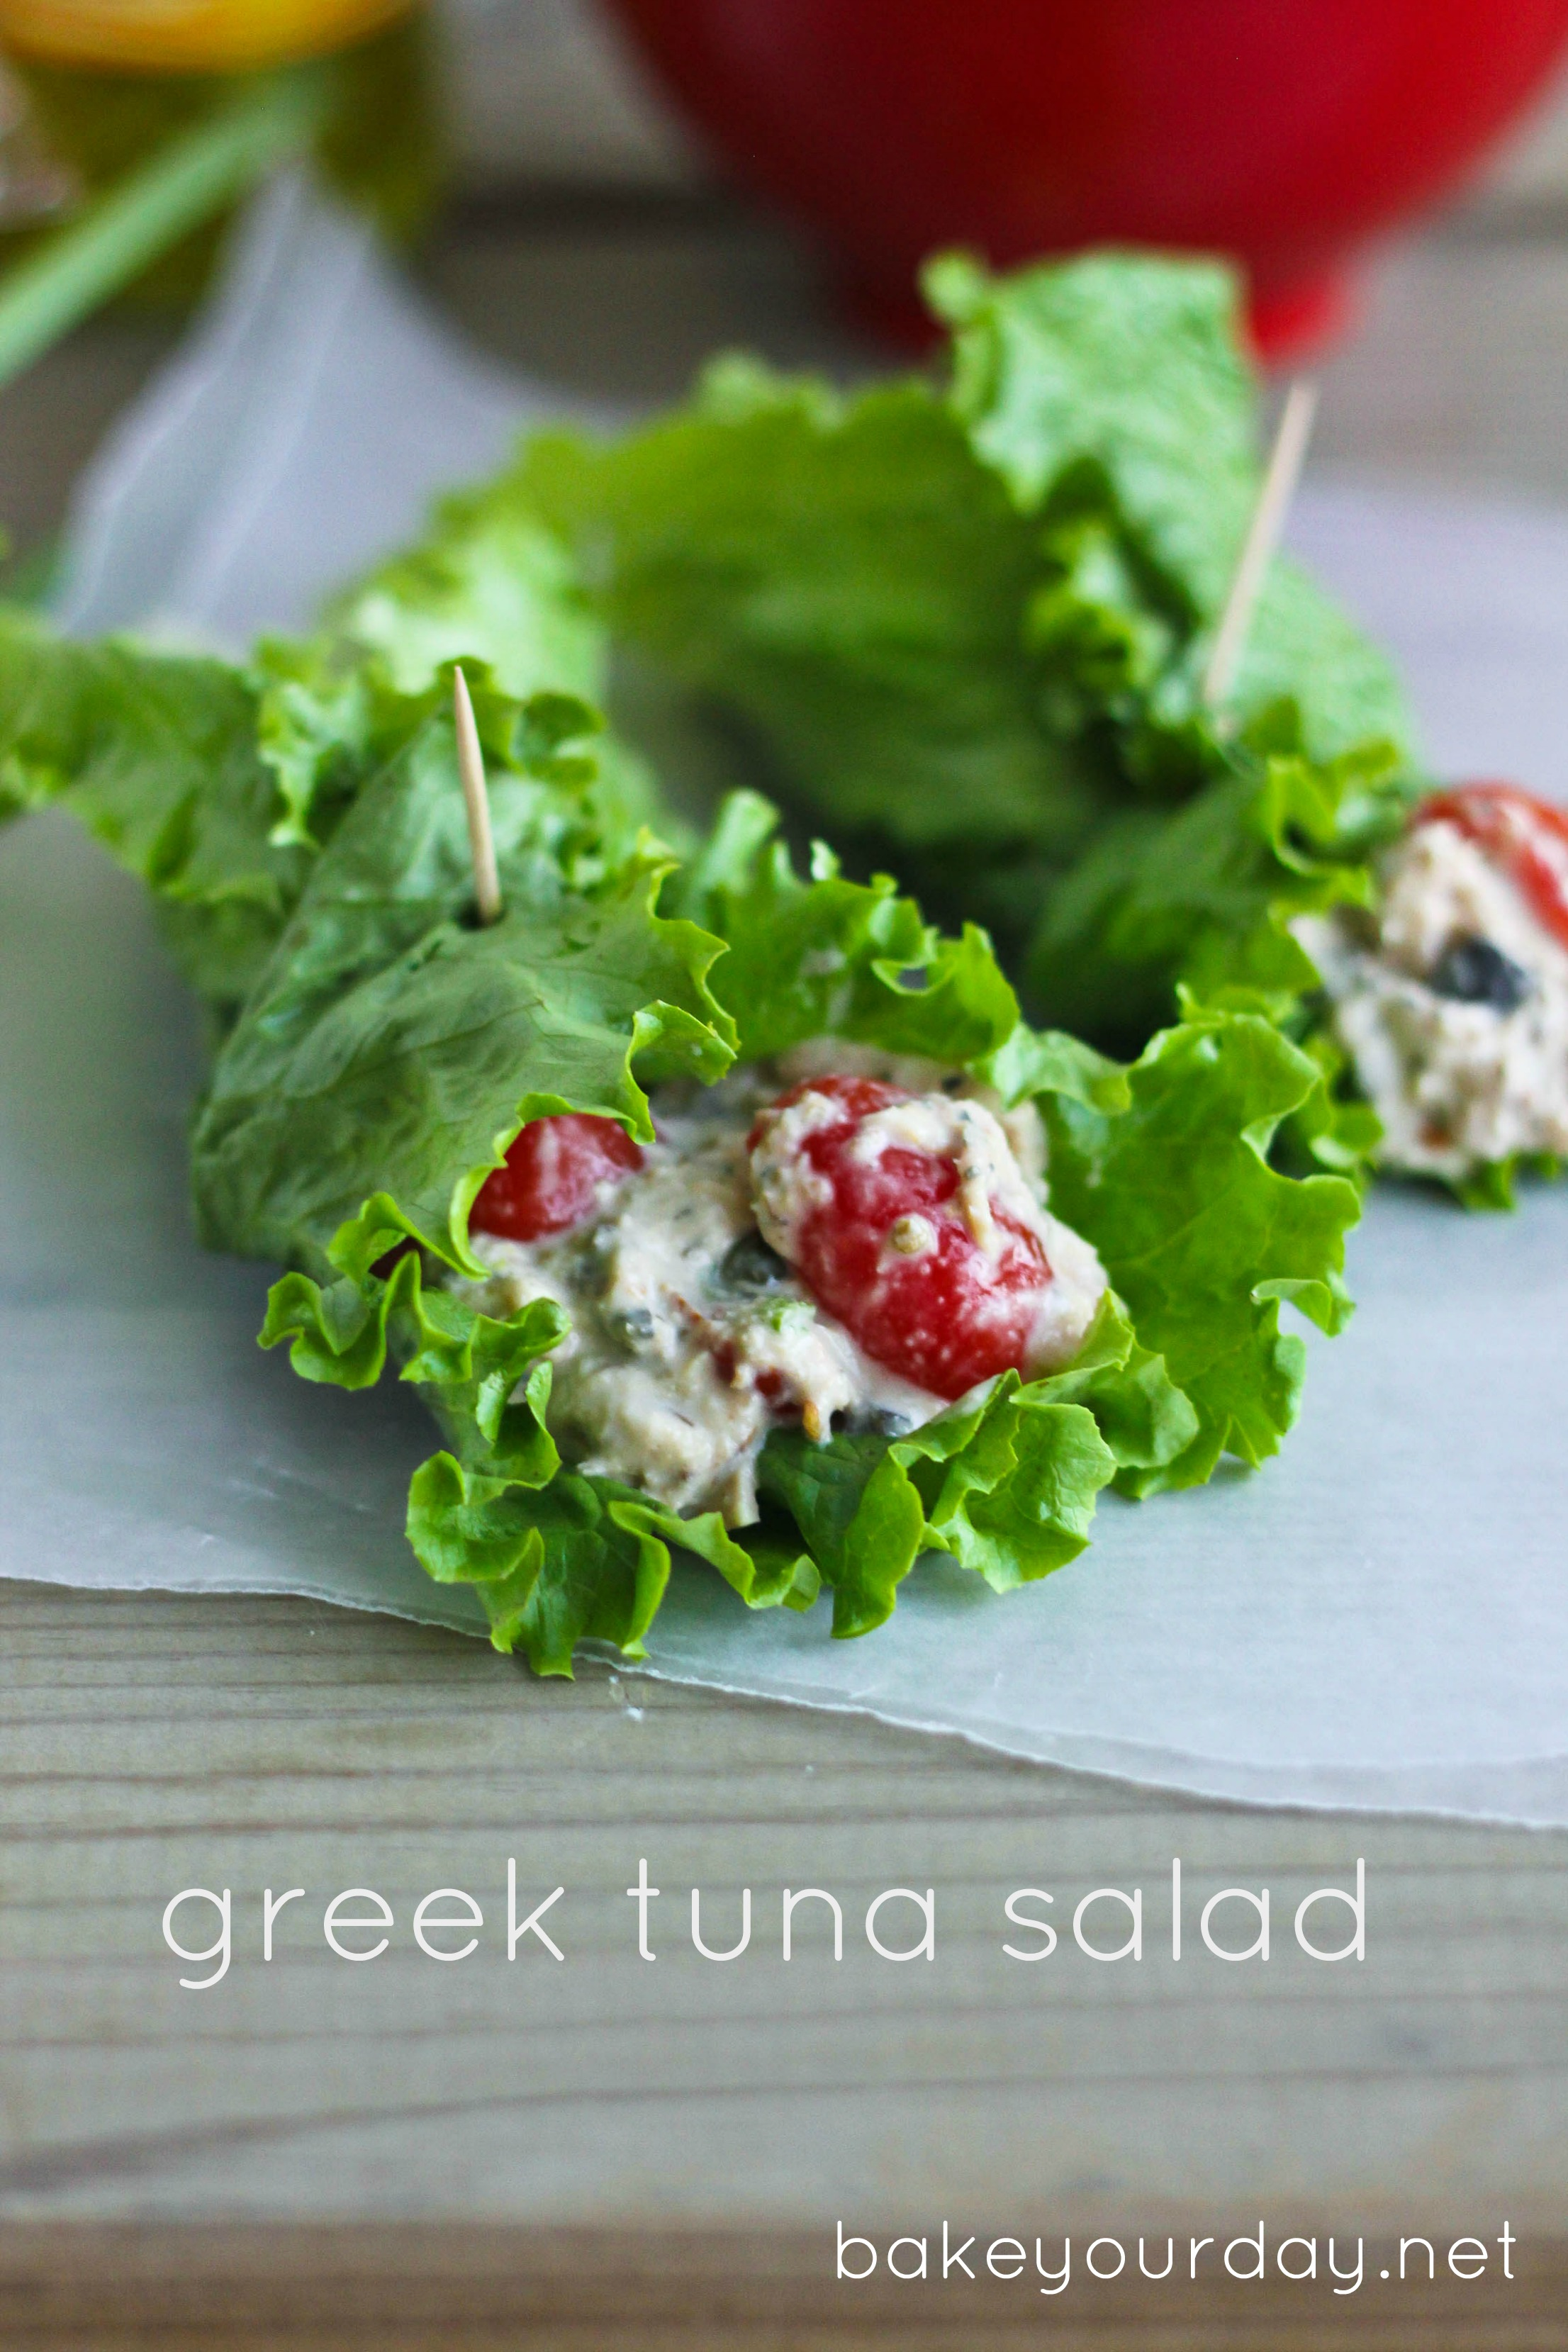 ... lettuce wraps tuna salad lettuce wraps with capers and tomatoes